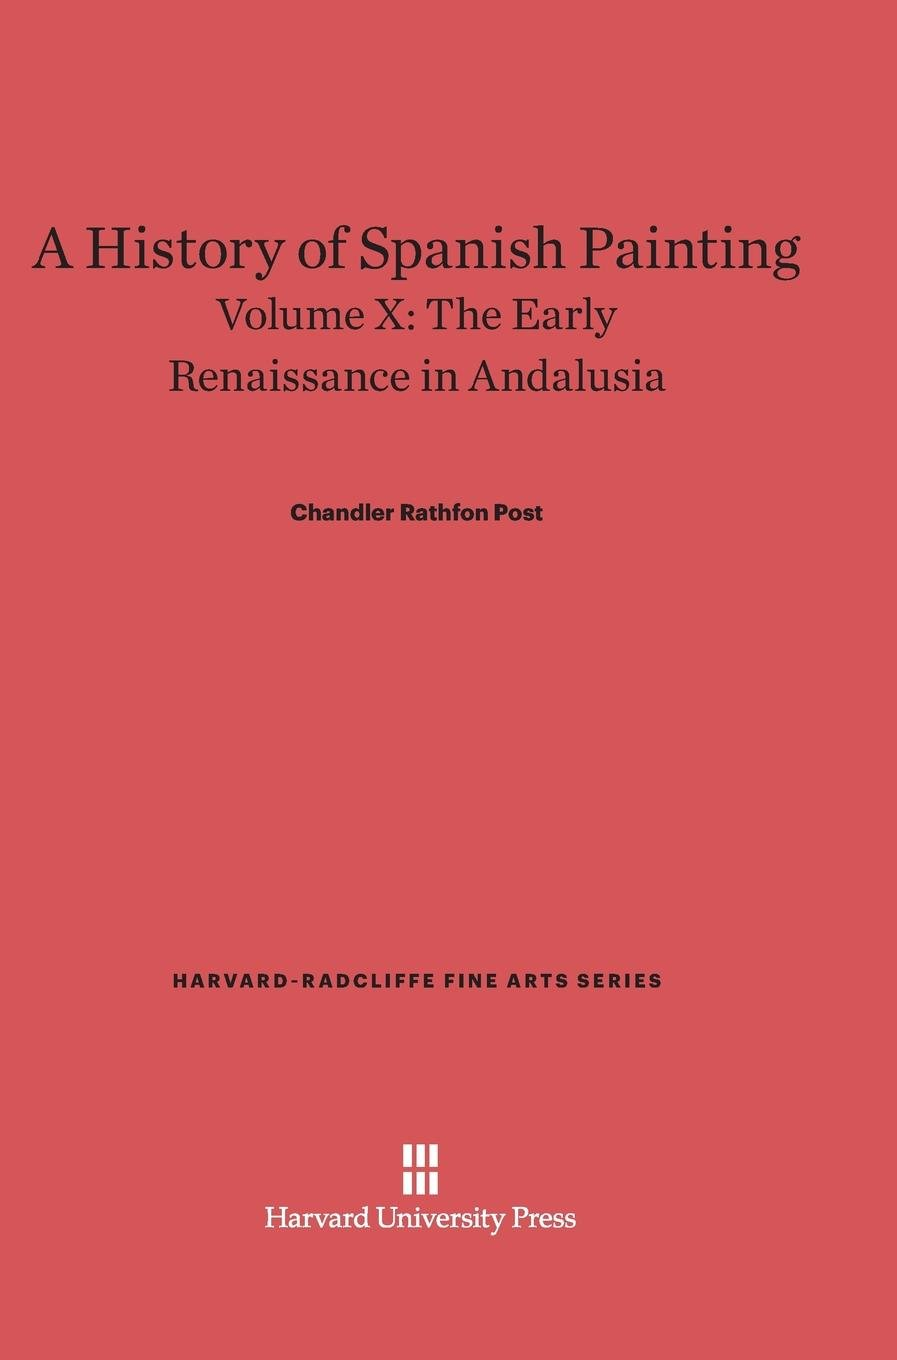 A History of Spanish Painting, Volume X, The Early Renaissance in Andalusia (Harvard-Radcliffe Fine Arts) ebook